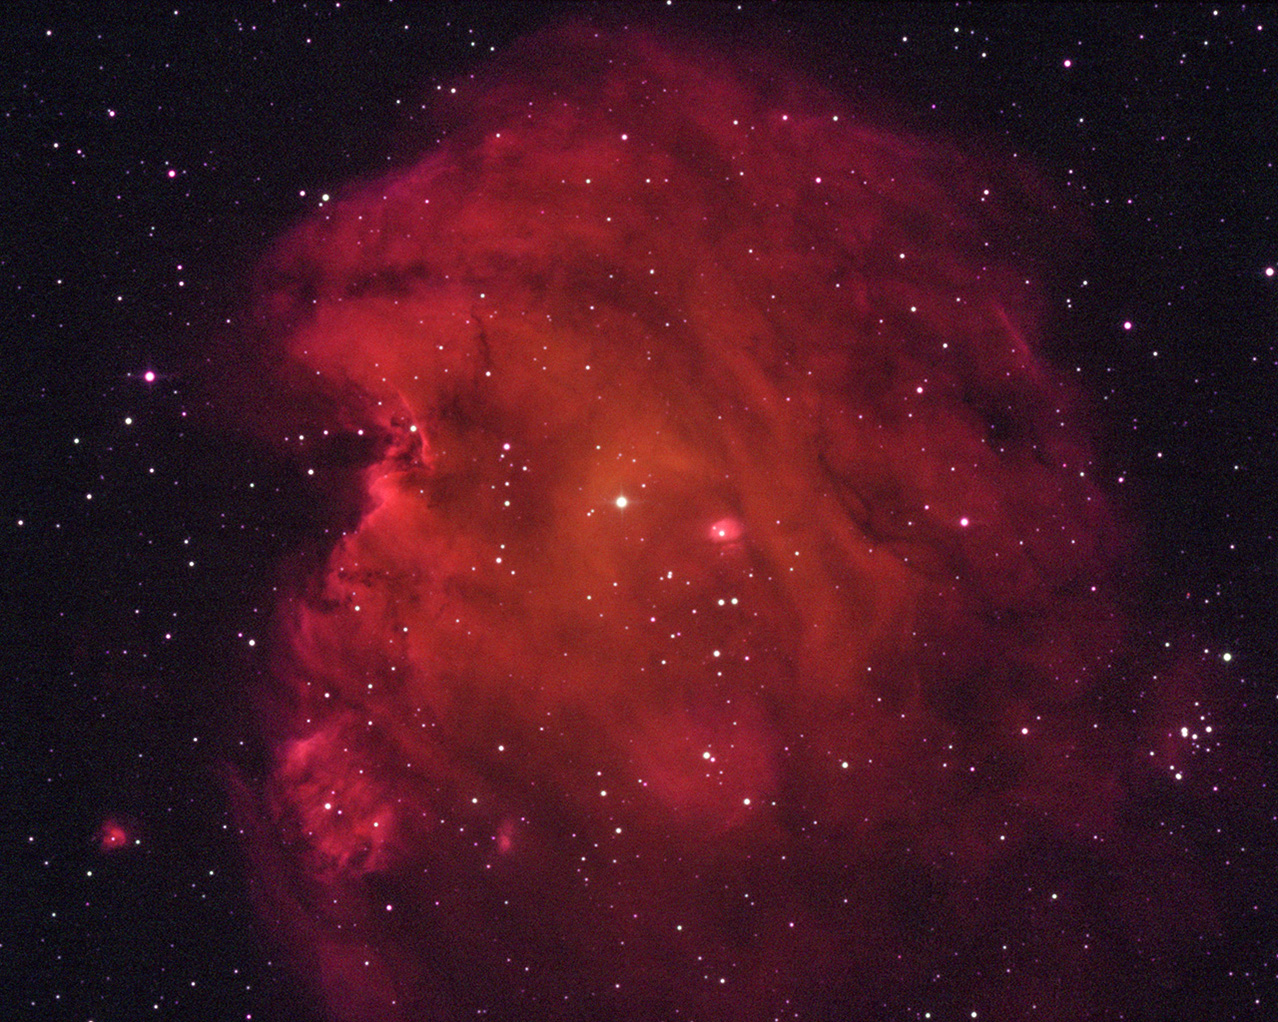 Monkey Head Nebula SH2-252 in the constellation of Orion.